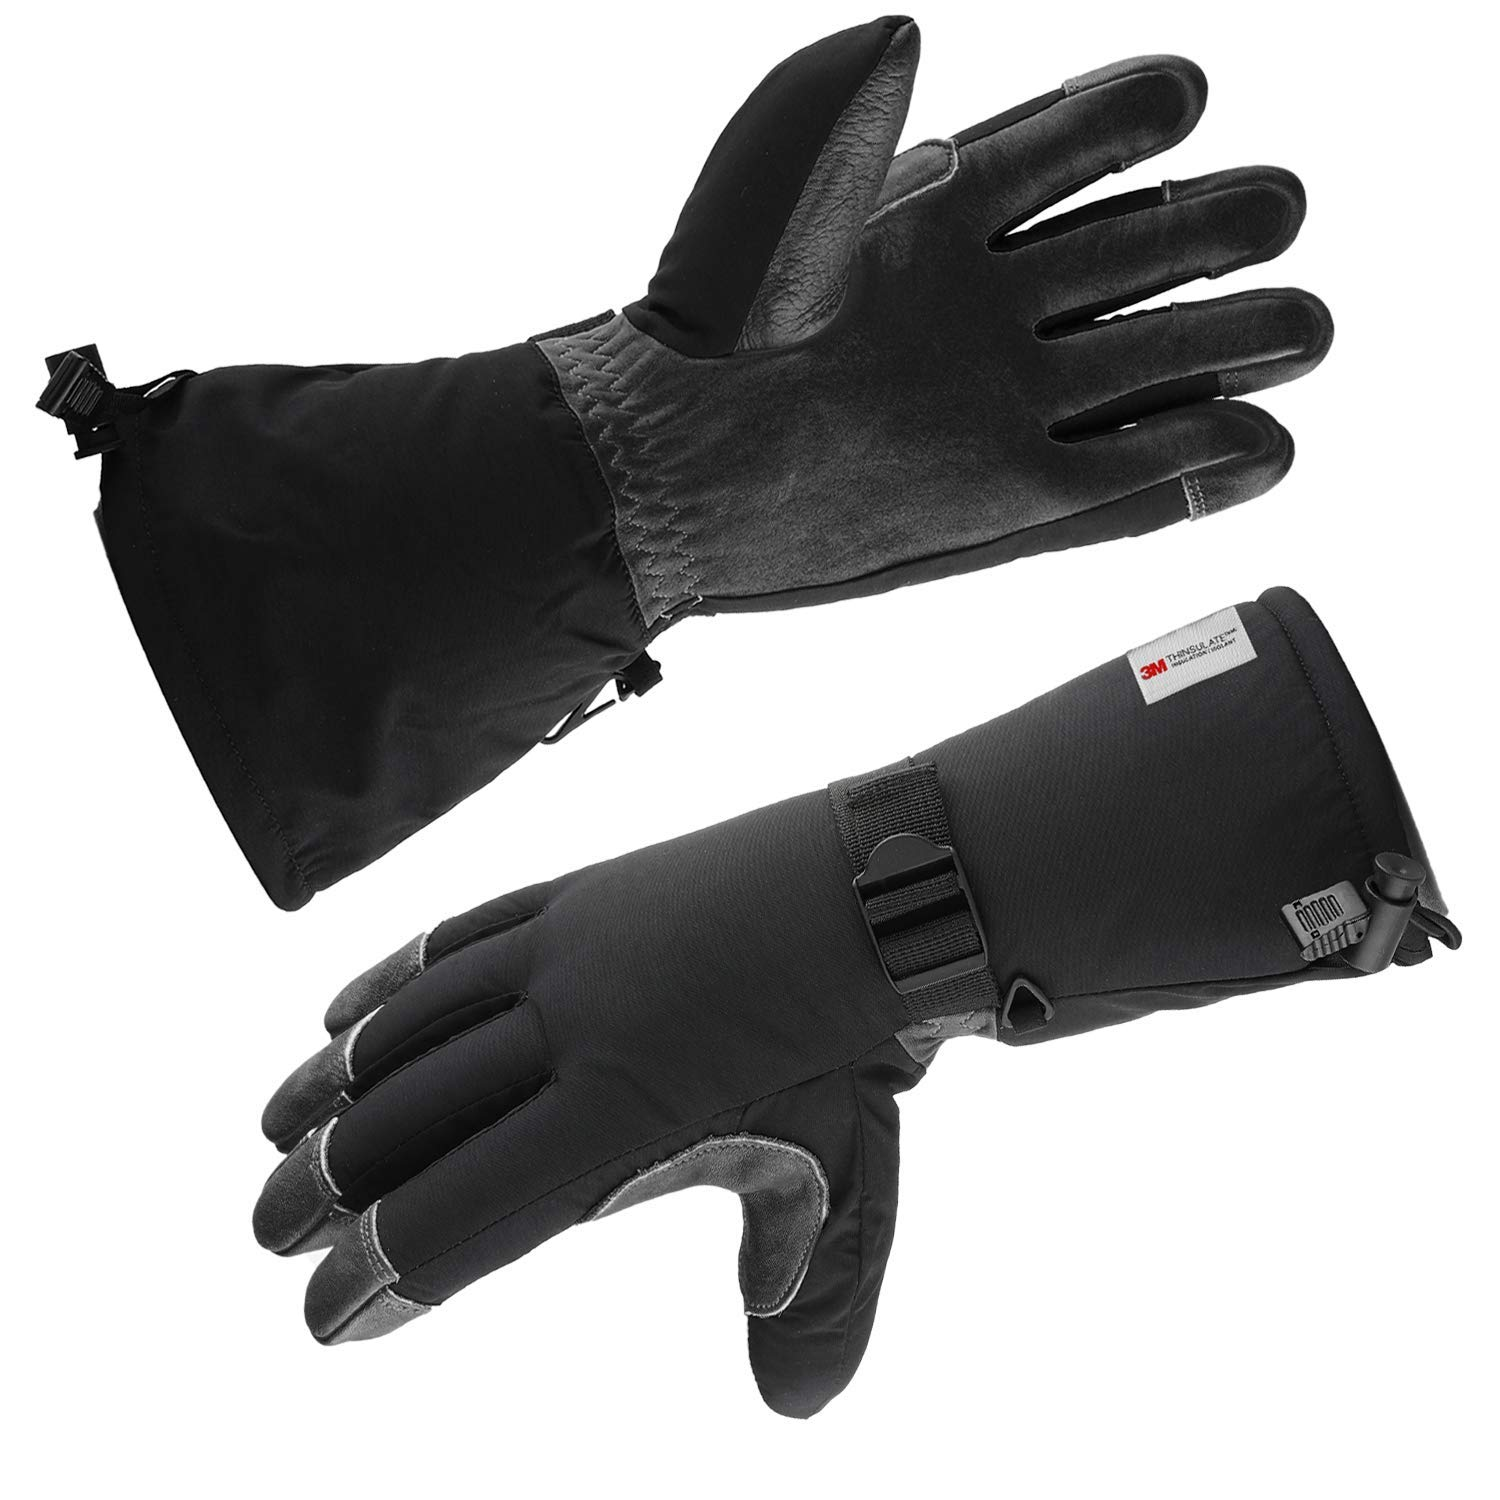 a8d9217e16fce Get Quotations · Ski Snowboarding Winter Cold Weather Gloves Thermal  Protection 3M Thinsulate Insulation For Men And Women